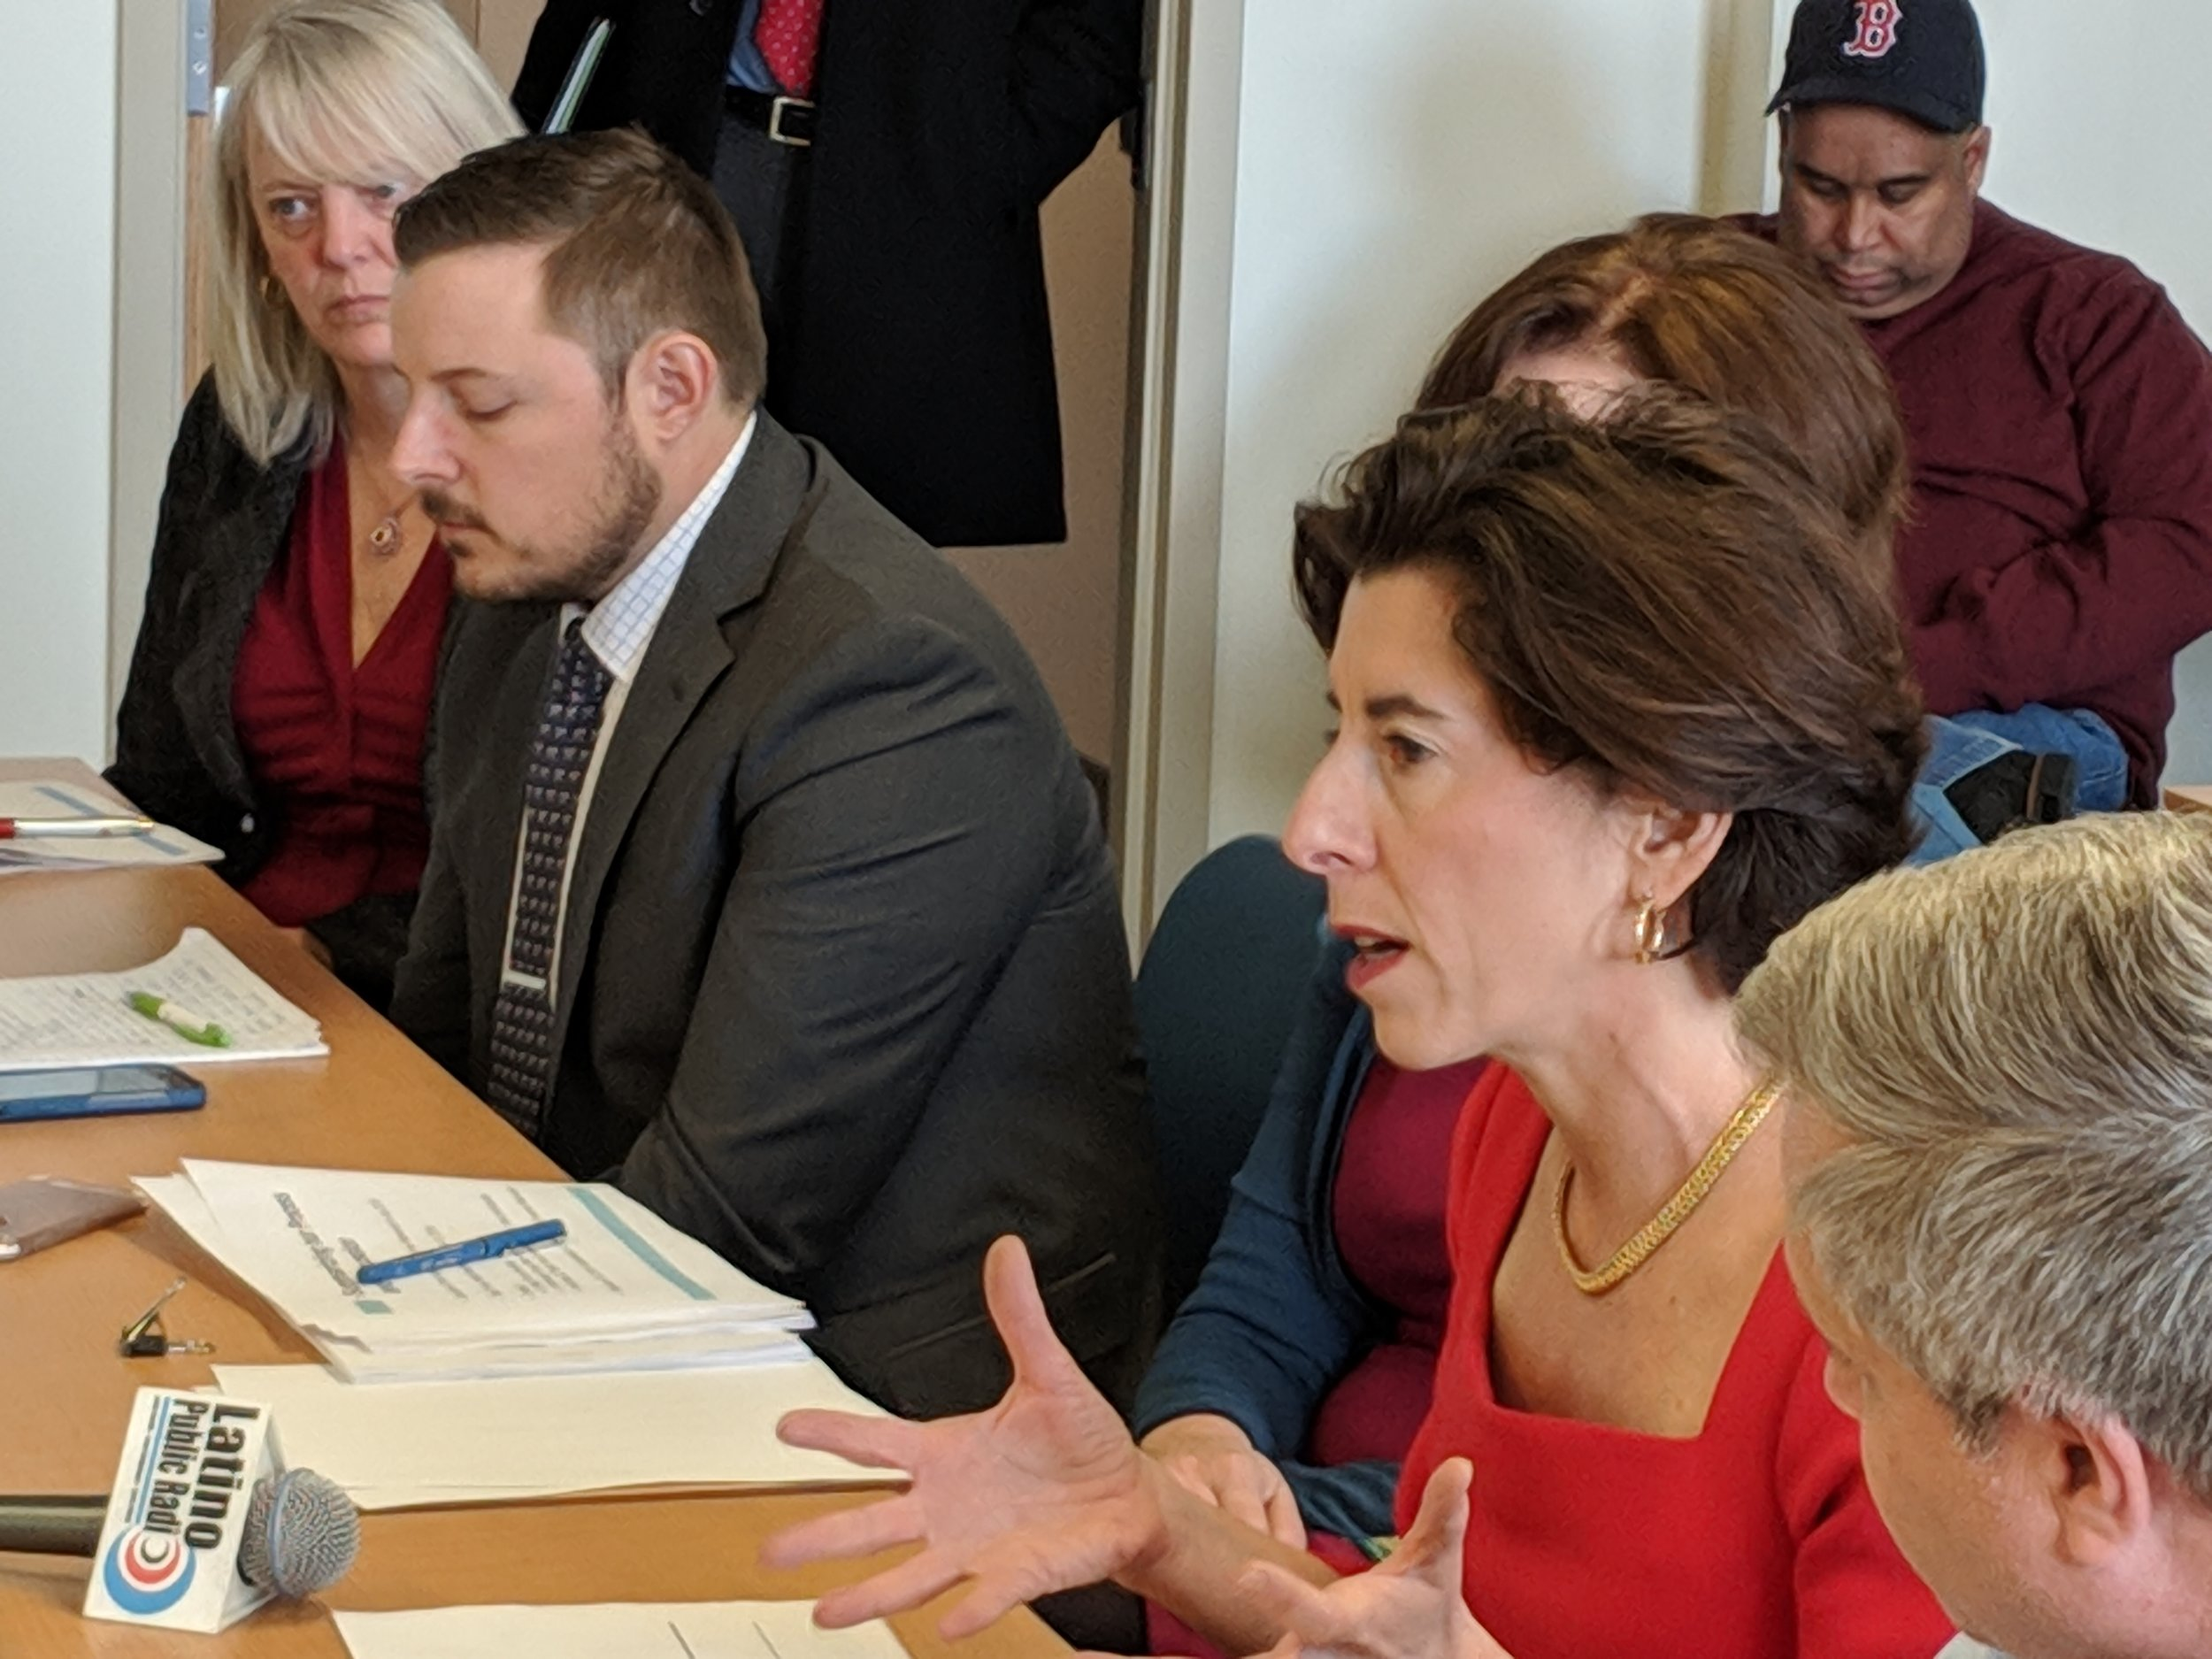 Gov. Gina Raimondo, second from right, will issue another executive order to address plastics waste. (Tim Faulkner/ecoRI News photos)